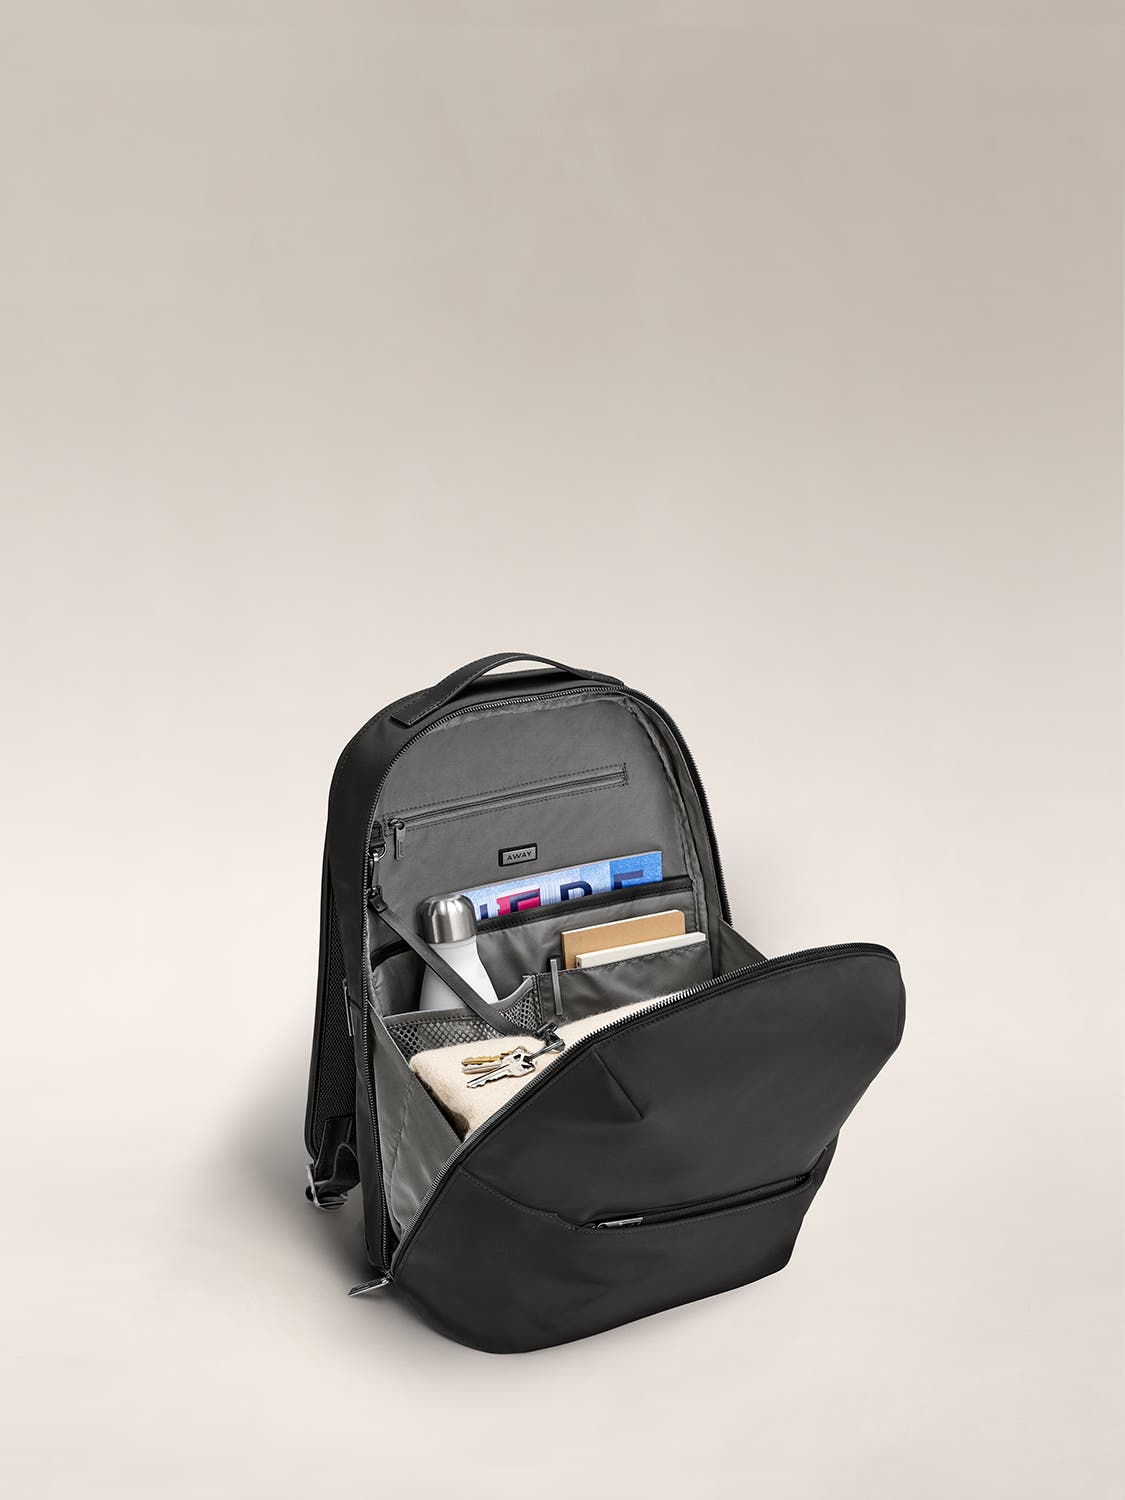 Inside view of black backpack with grey lining showing travel accessories packed and organized in the various pockets.